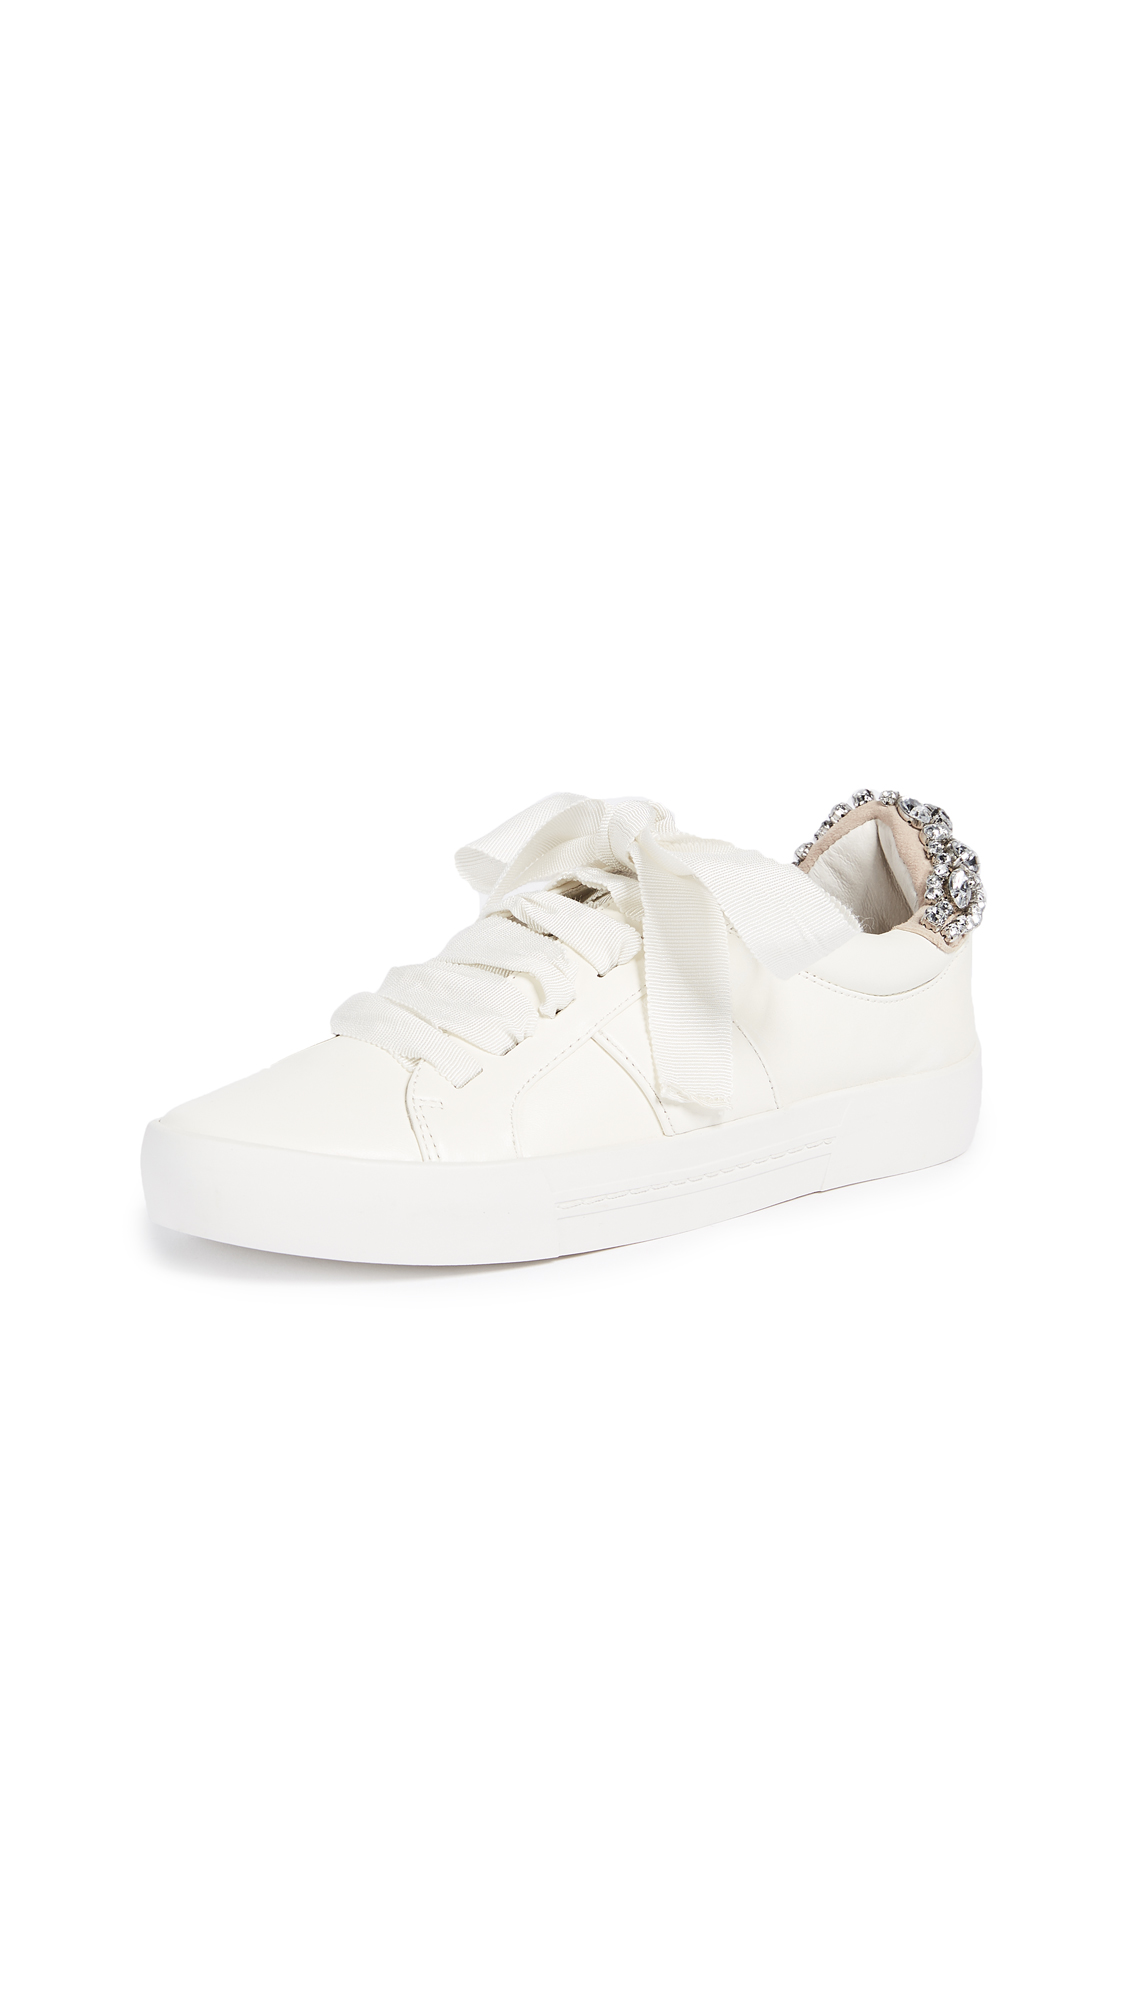 Joie Darena Sneakers - Bright White